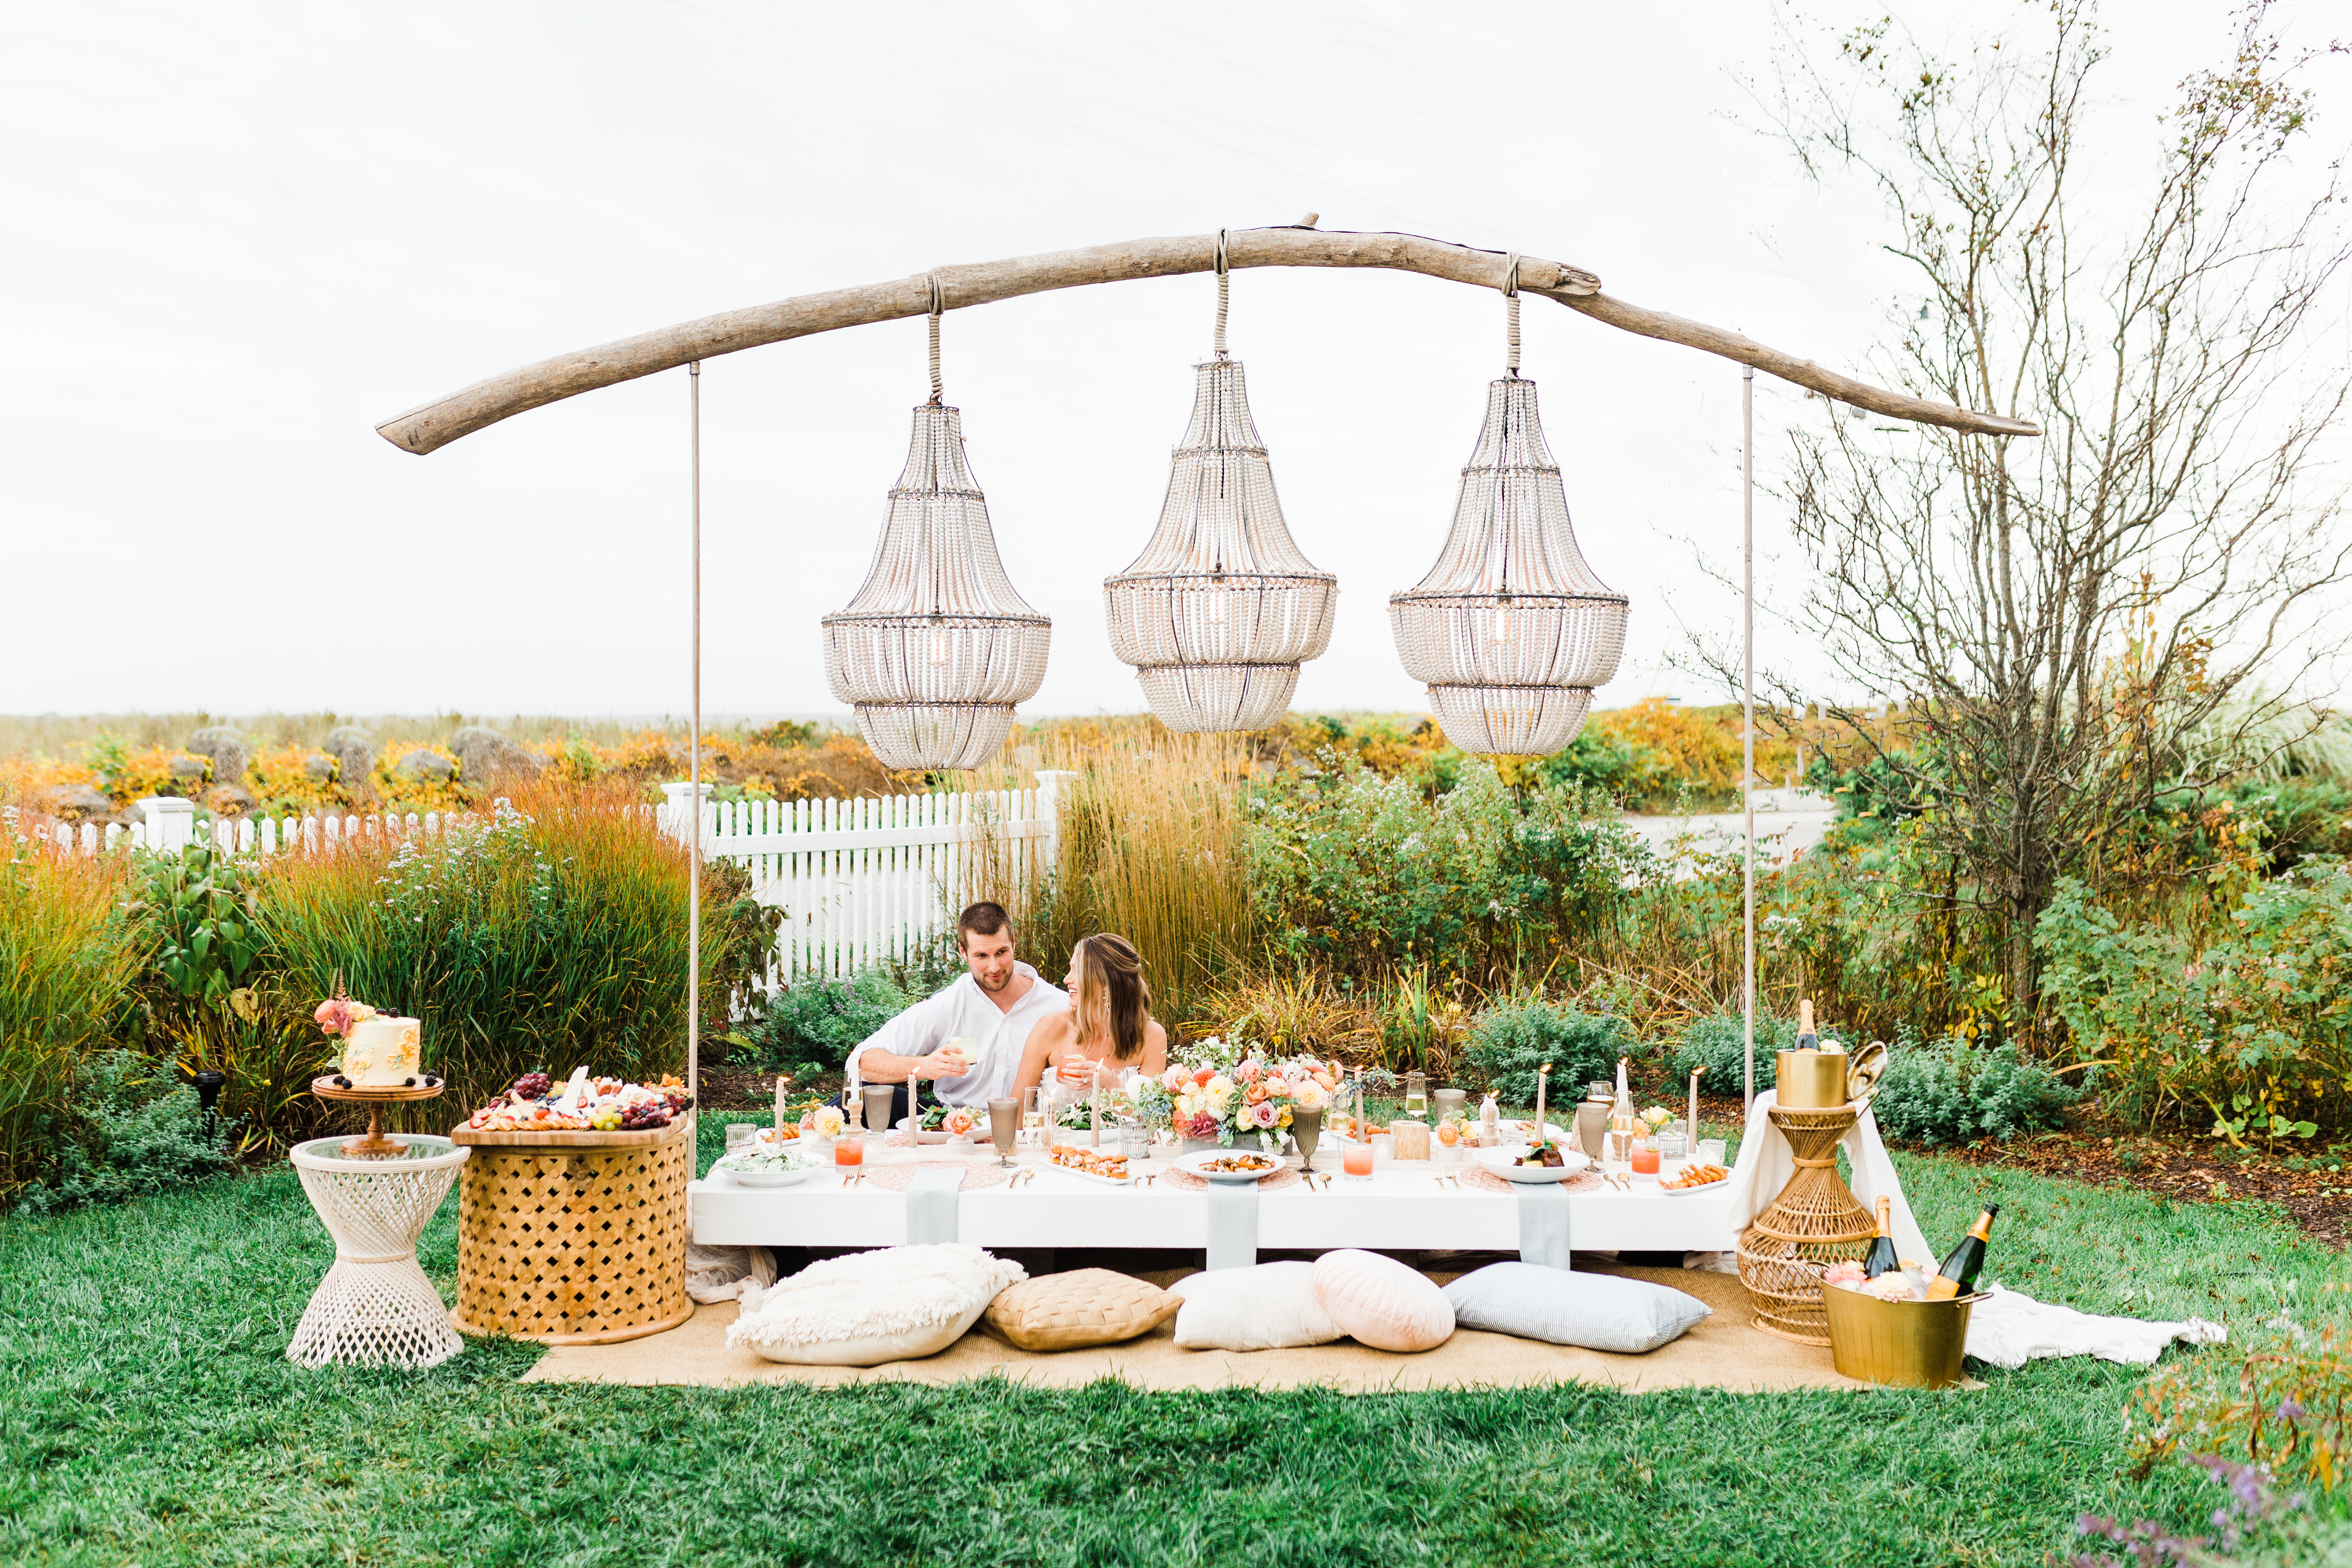 Couple sitting in lawn at picnic table wedding setting